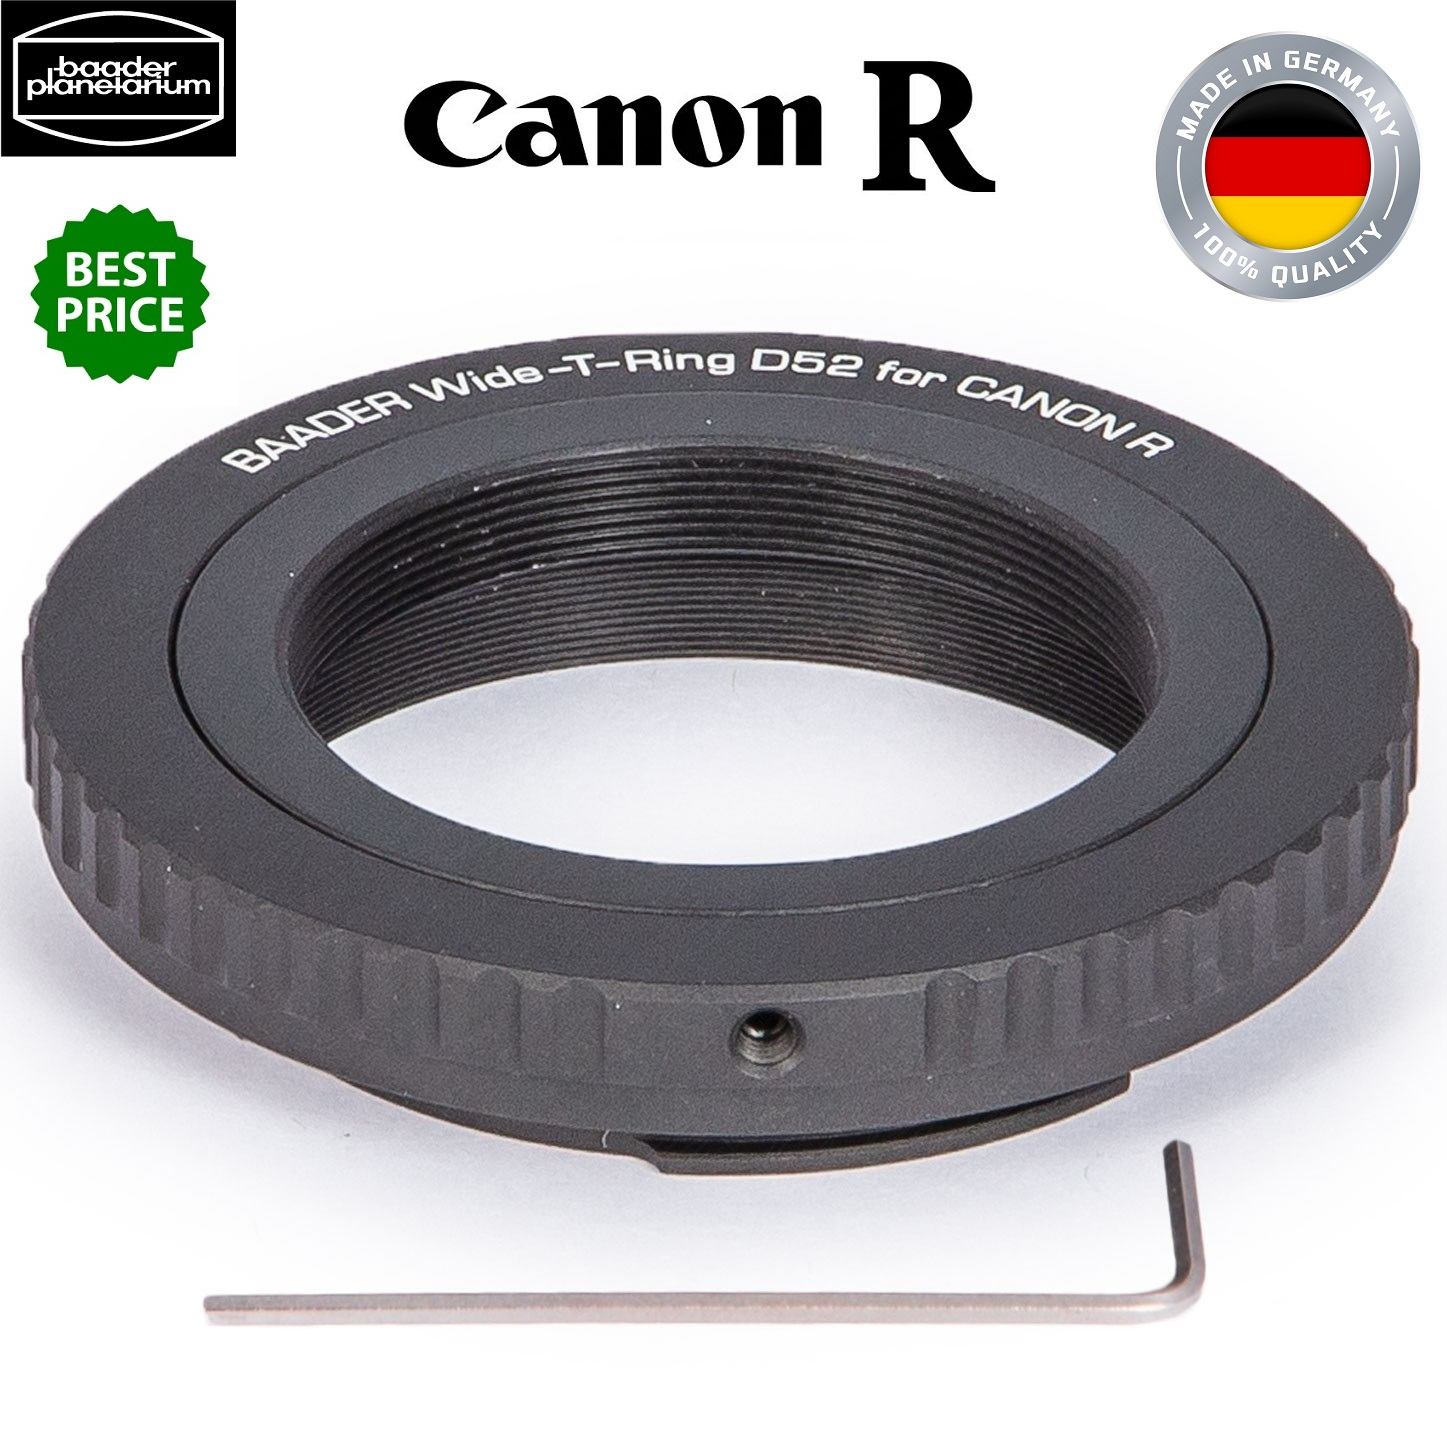 Baader Wide T-Ring For Canon R Bayonet with D52i to T-2 and S52